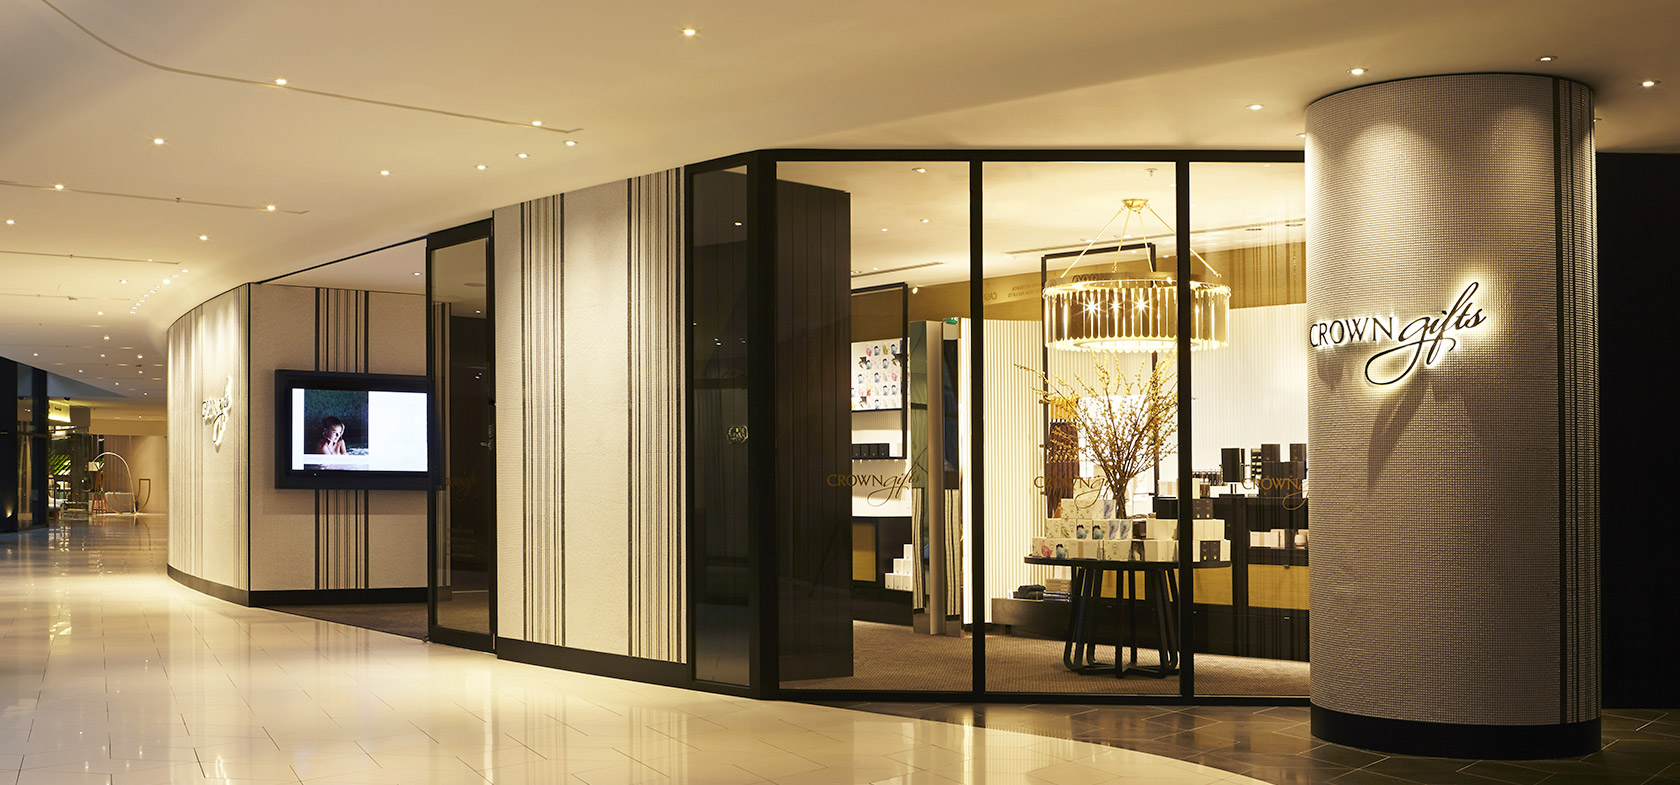 Crown gift store gold fascia retail fitout melbourne